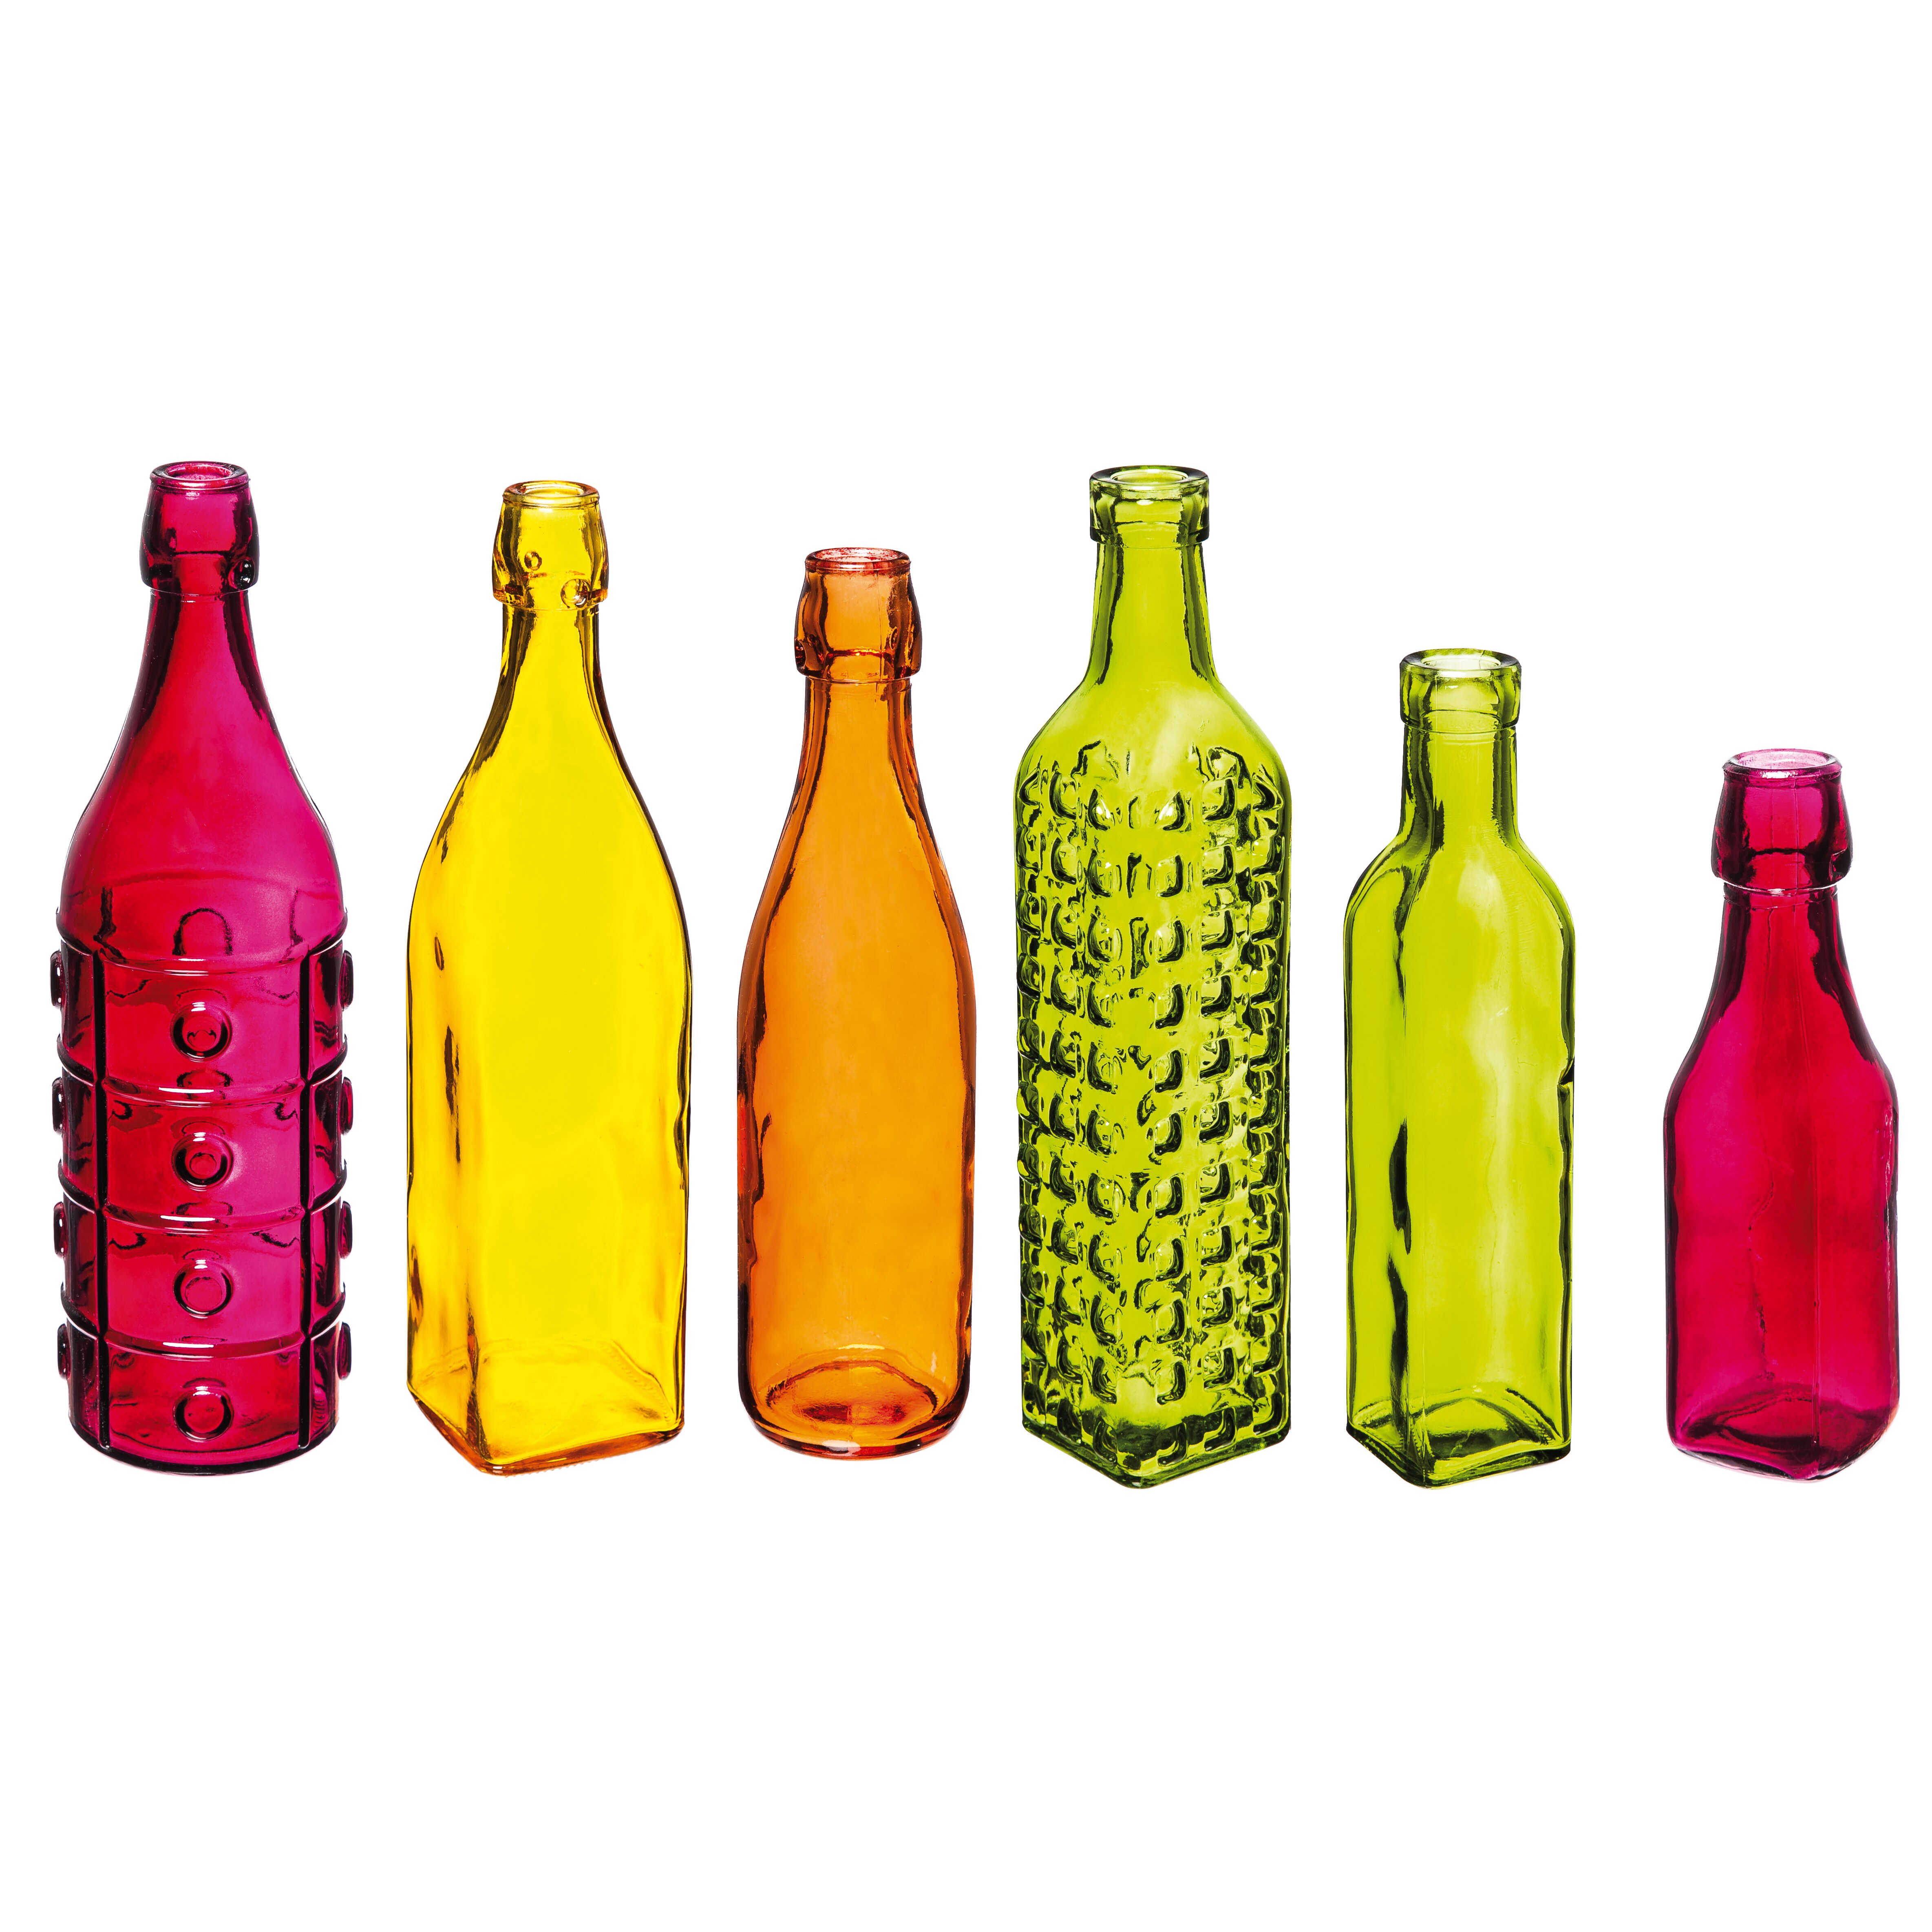 Evergreen enterprises inc decorate your garden set of 6 - How to decorate glass bottles ...